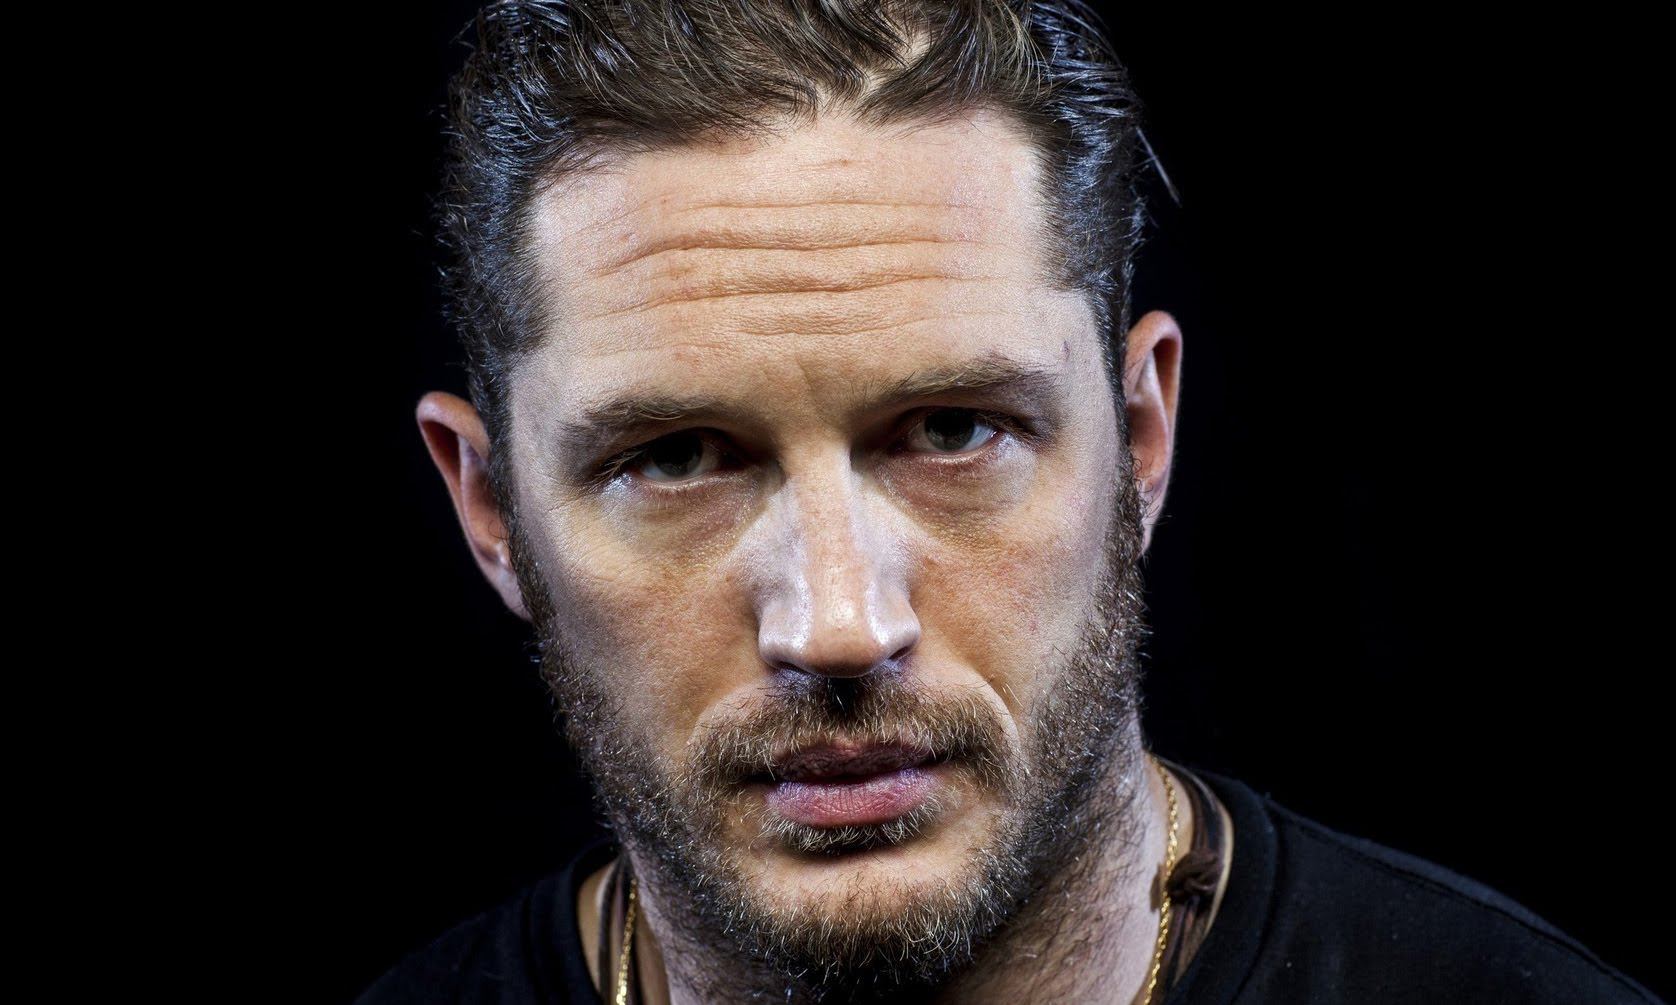 Surprise ! Un album de rap signé Tom Hardy ressort des tréfonds d'internet.